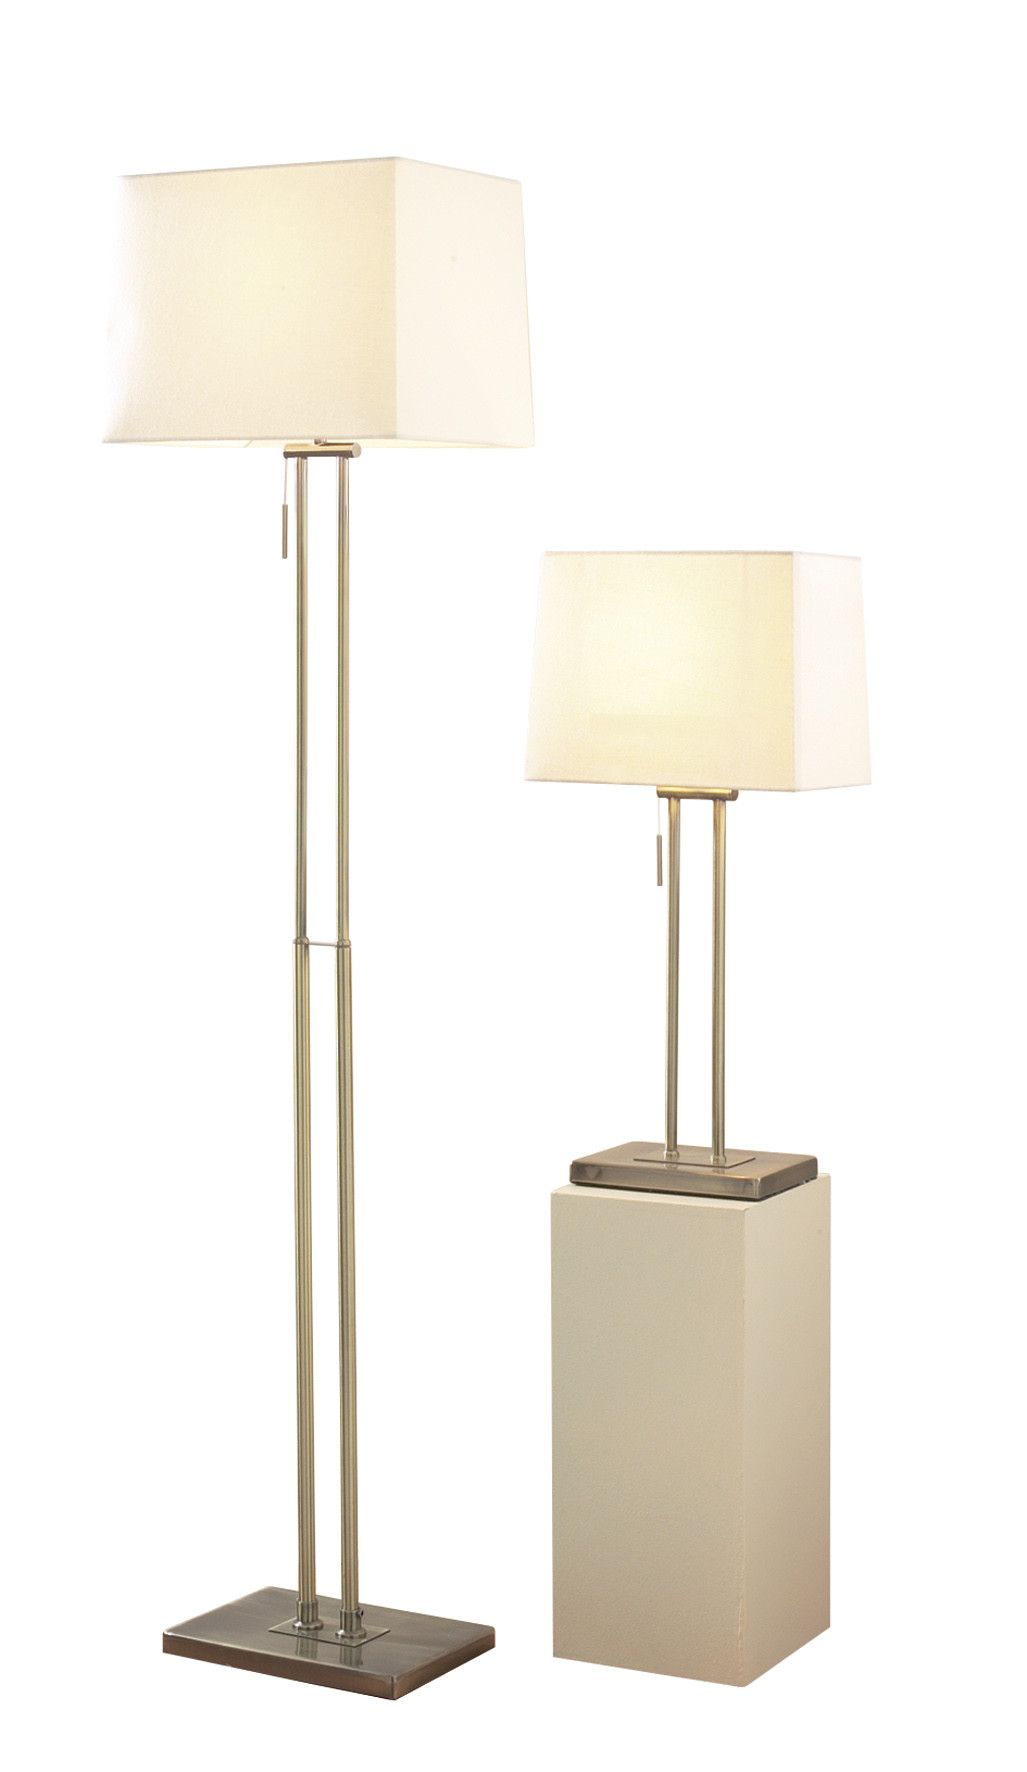 Picasso 2 Piece Table and Floor Lamp set | Lamp sets, Table lamp ...